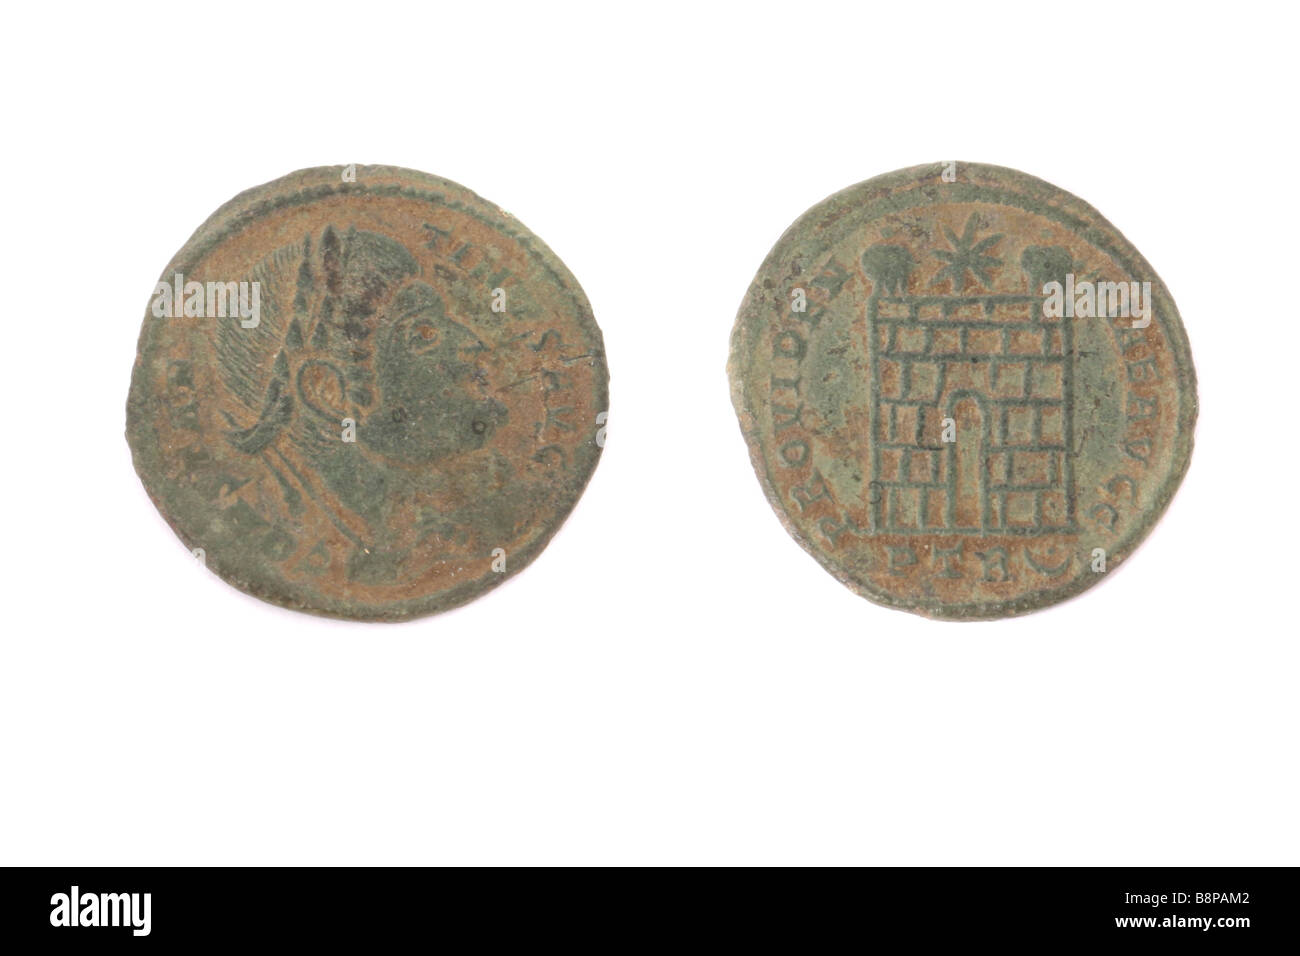 The front and back of a Roman coin found in England. - Stock Image